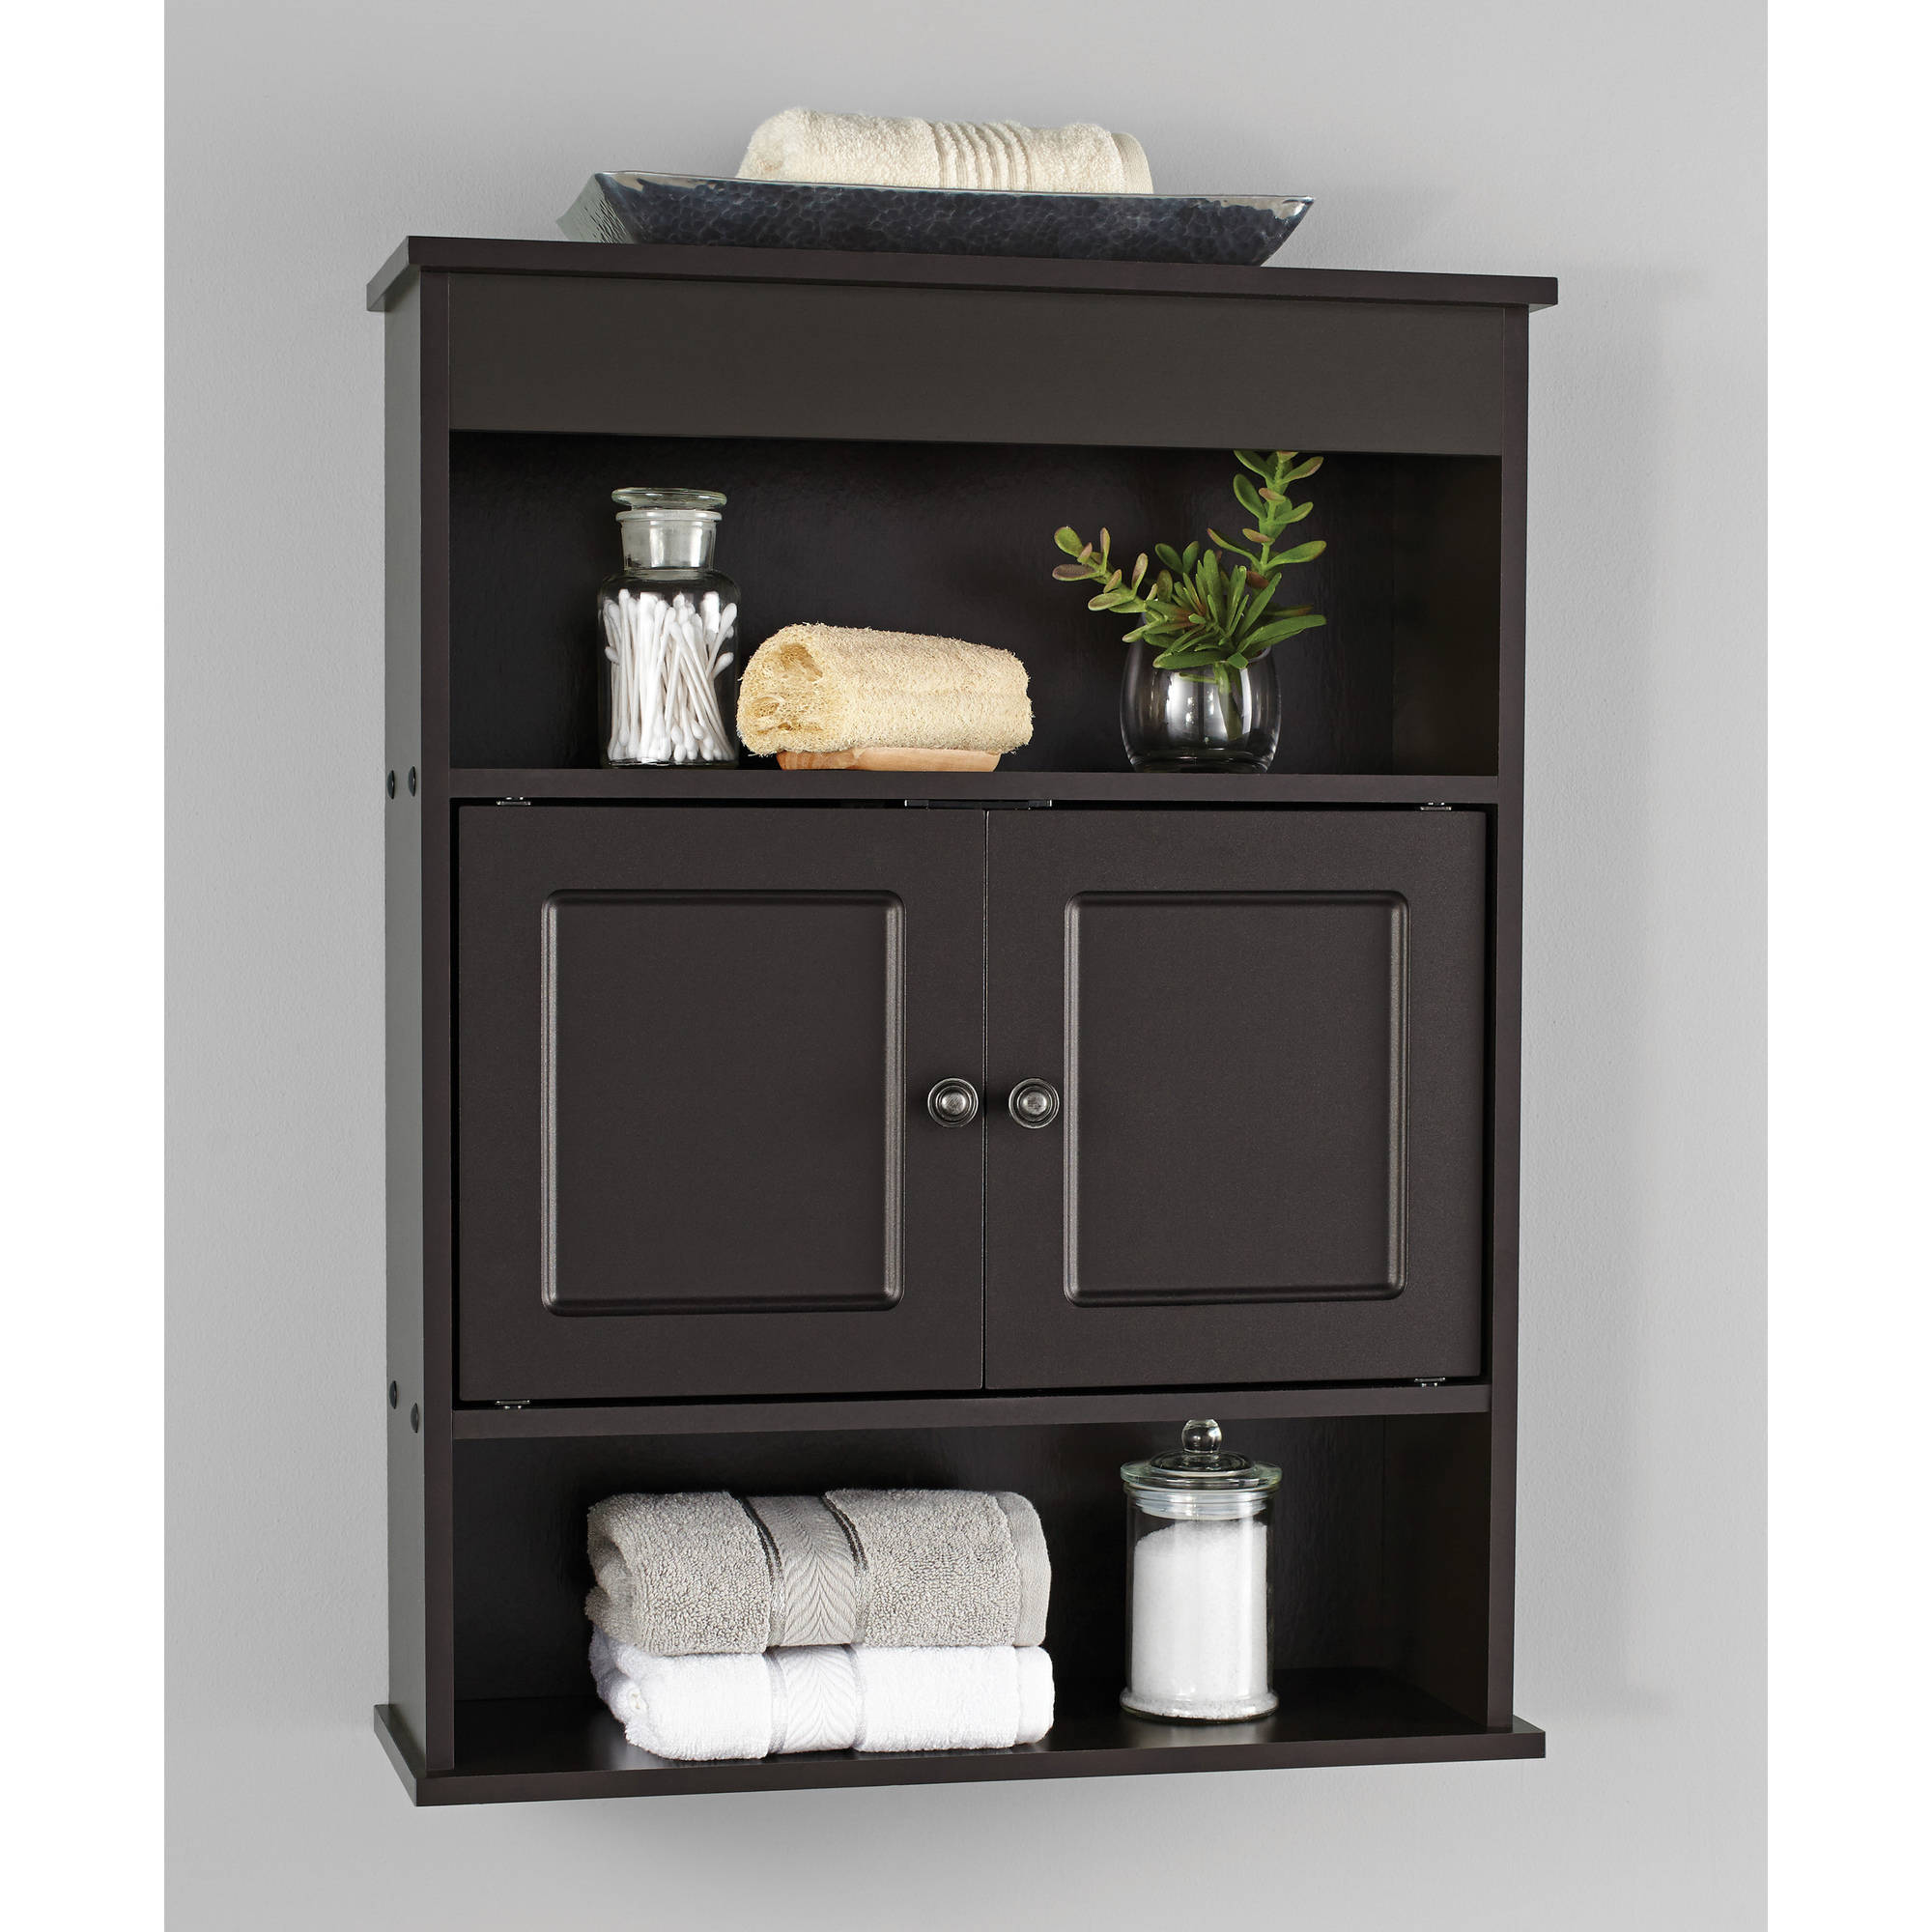 wall cabinets for bathroom storage chapter bathroom wall cabinet storage shelf espresso ebay 24521